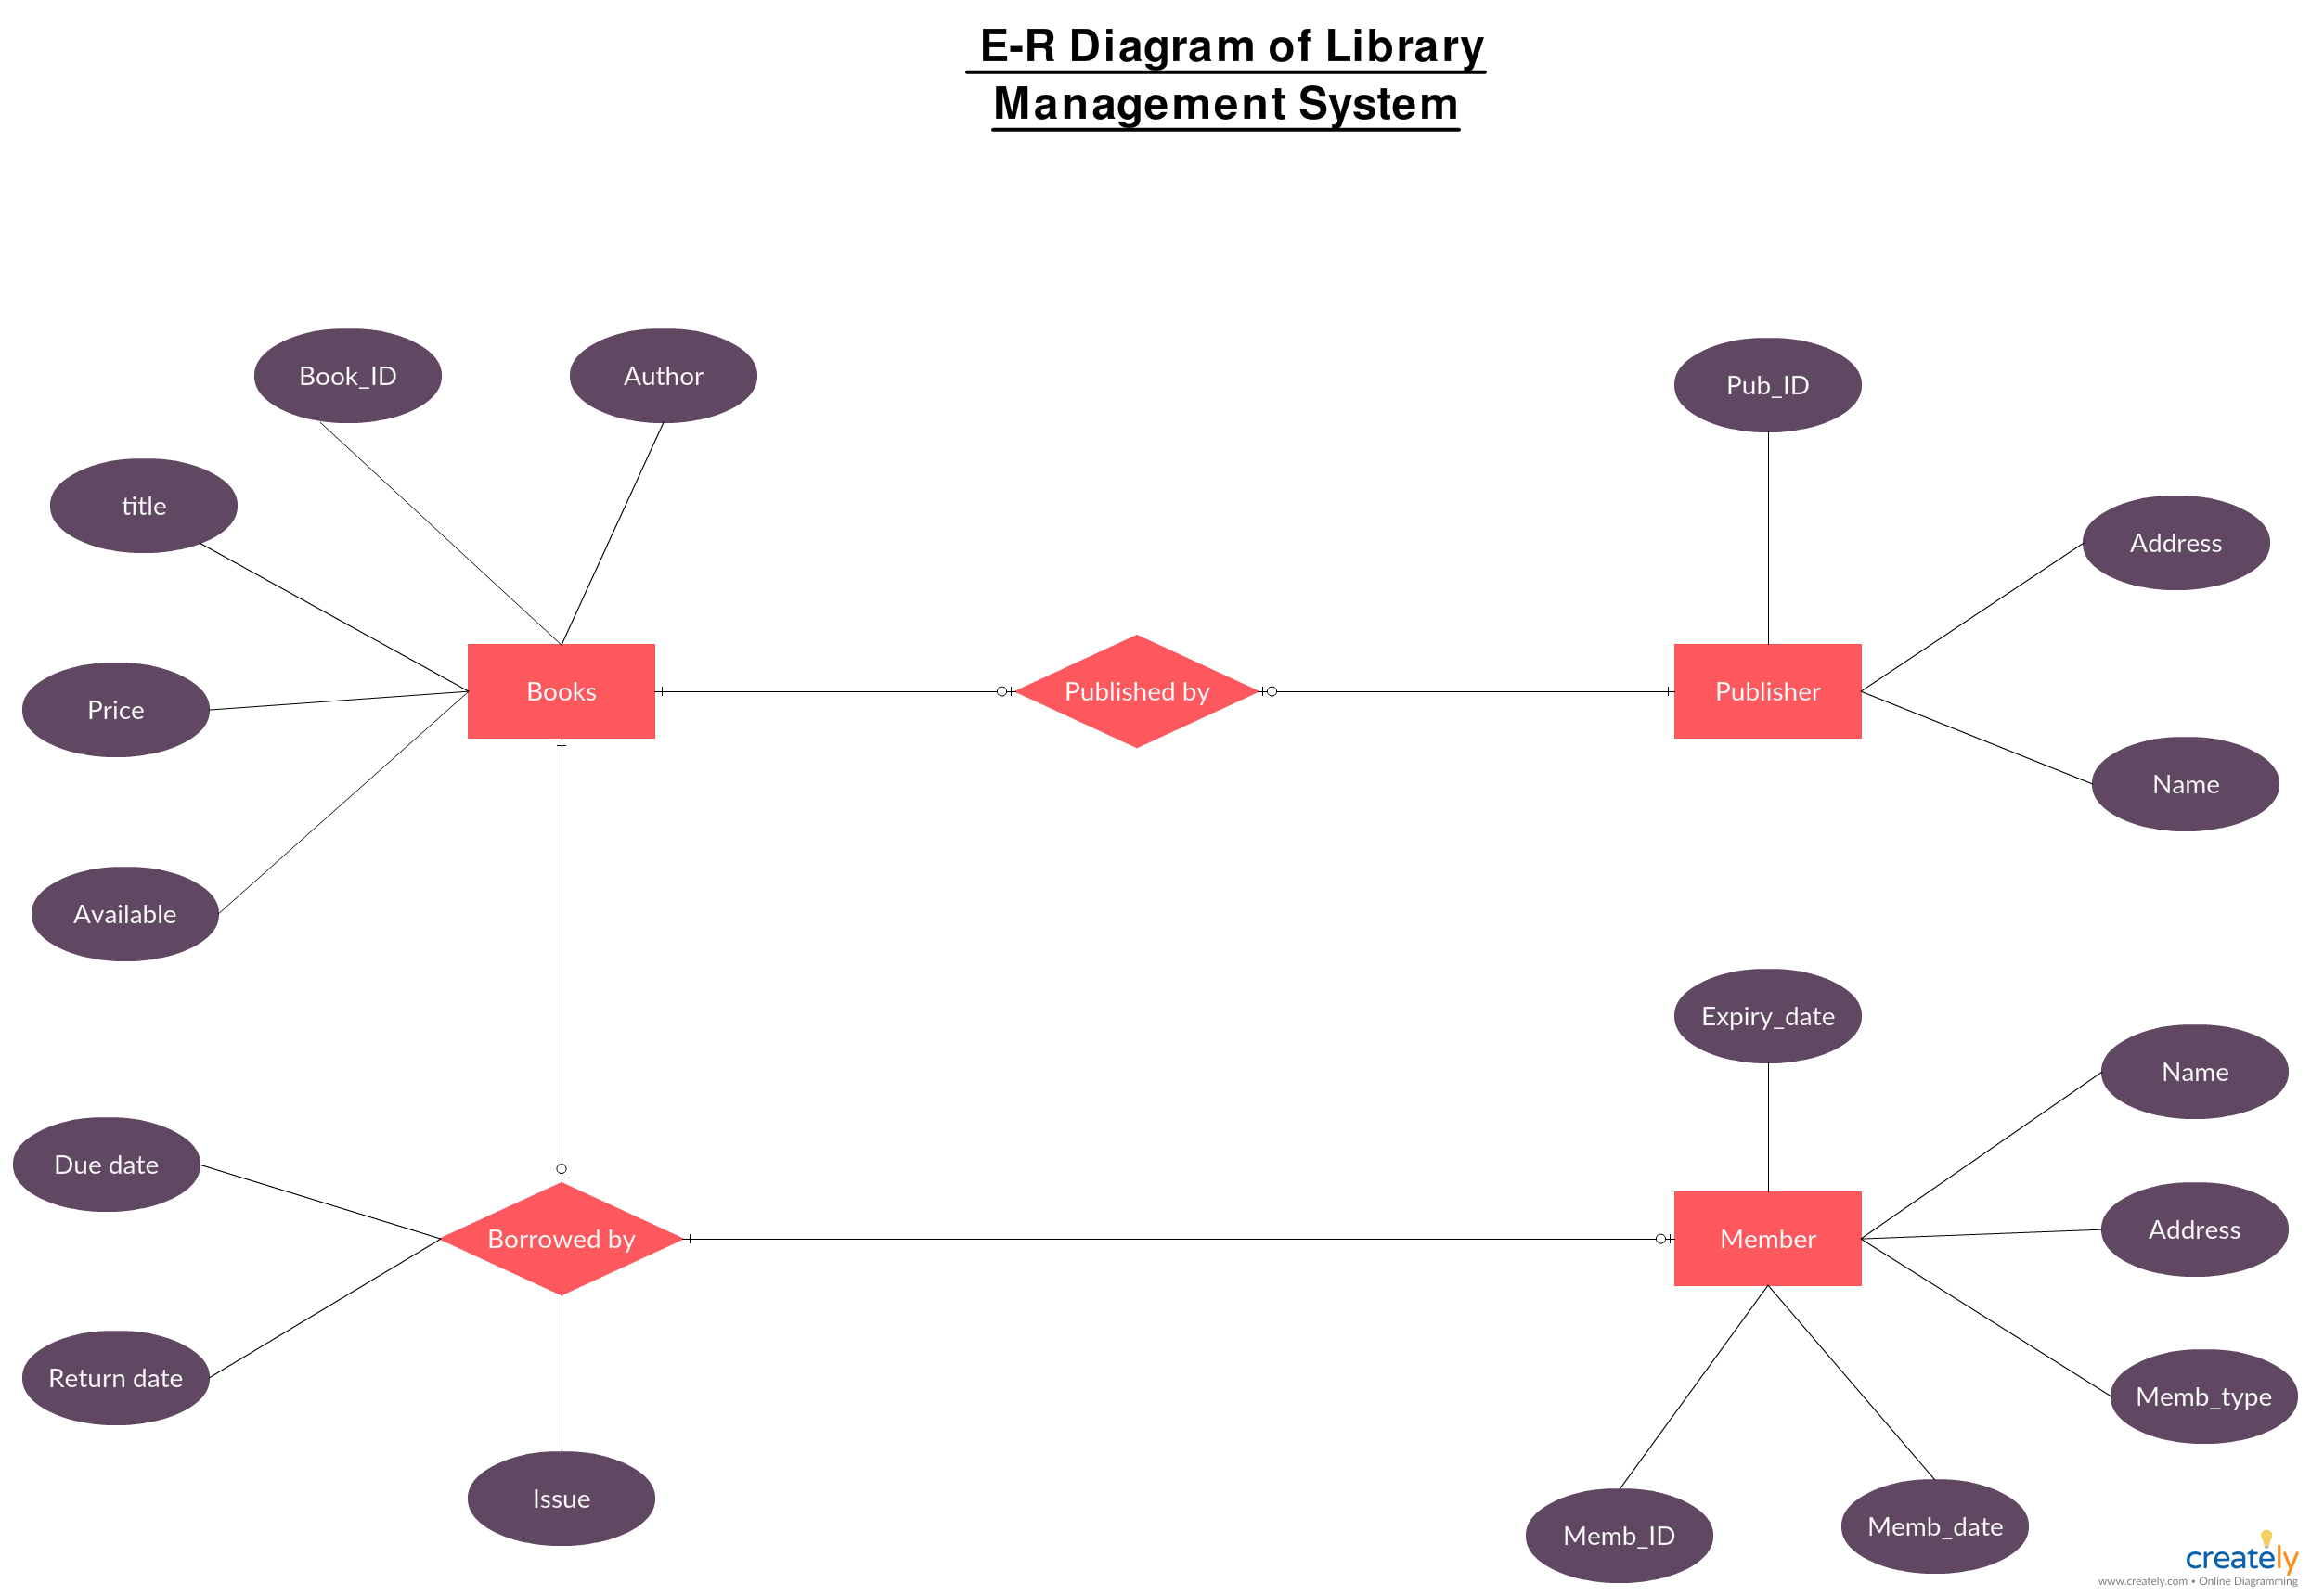 Entity Relationship Diagram Of Library Management System